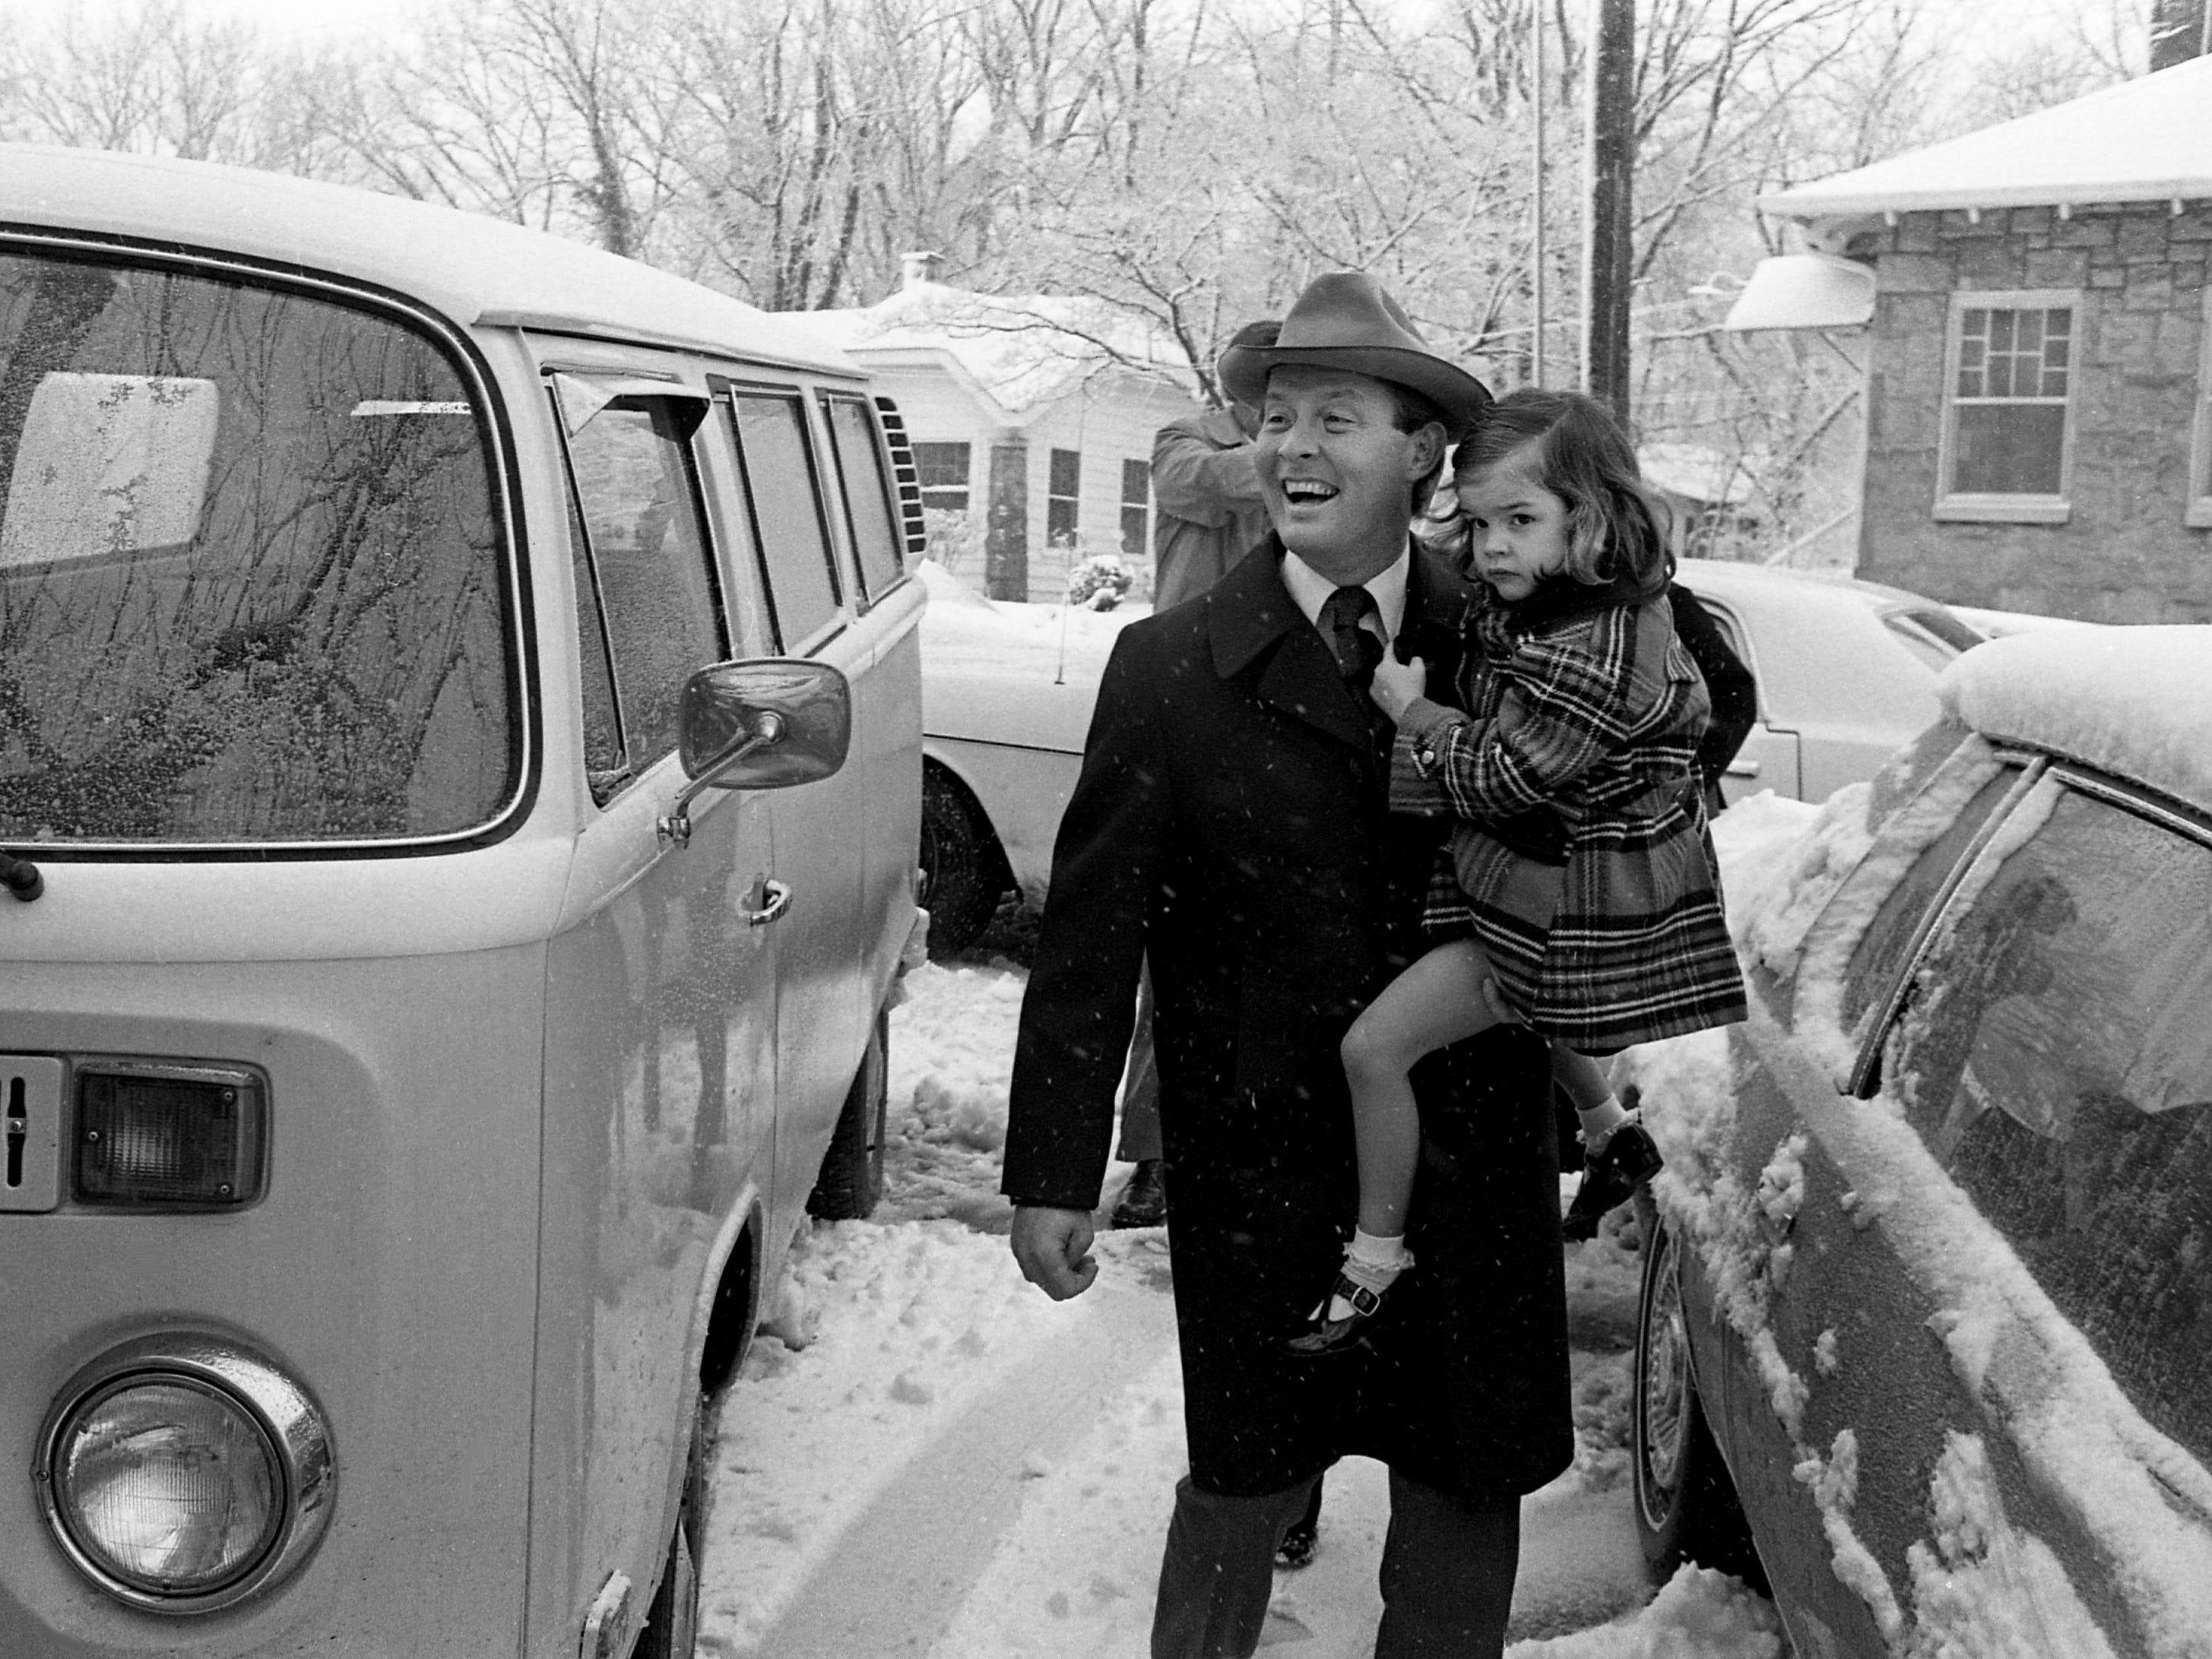 Gov. Lamar Alexander is all smiles, but daughter Kathryn is in a more pensive mood as they arrive at Westminster Presbyterian Church on Jan. 21, 1979. A special service marking Alexander's inauguration is being held at the church where he serves as a deacon. The new governor and his family arrived 10 minutes late.